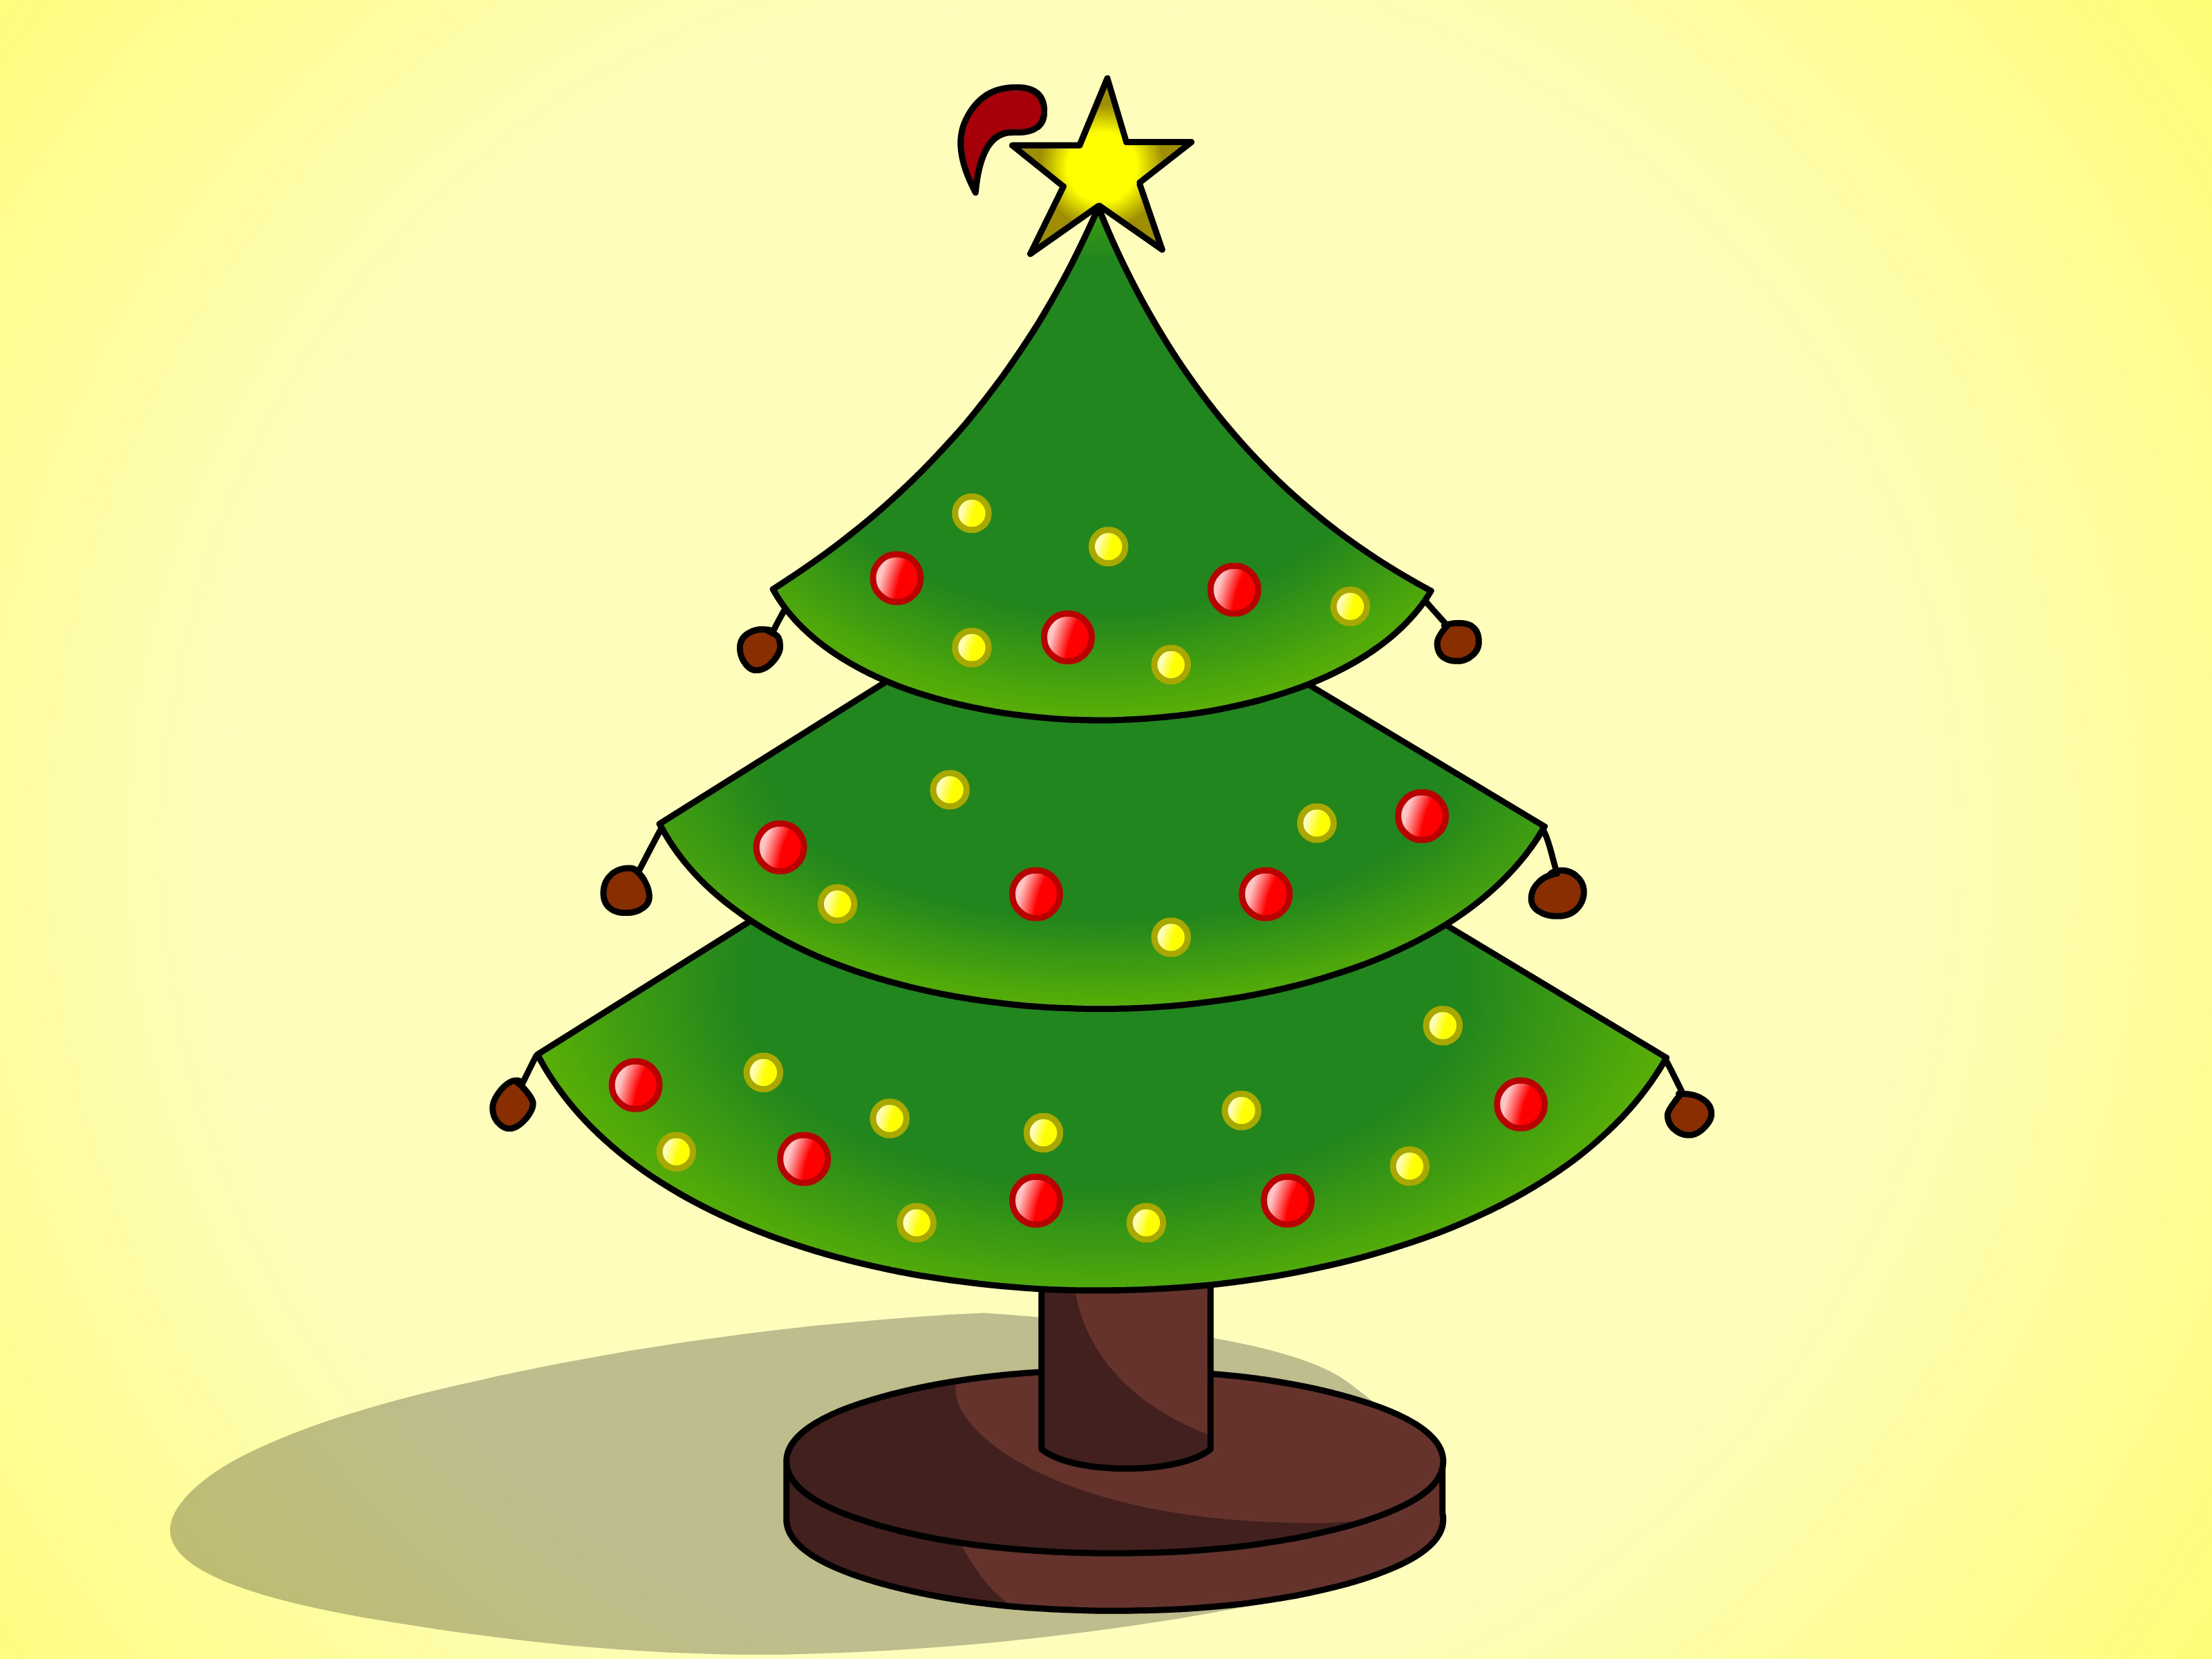 3200x2400 christmas tree drawing christmas tree christmas tree drawing